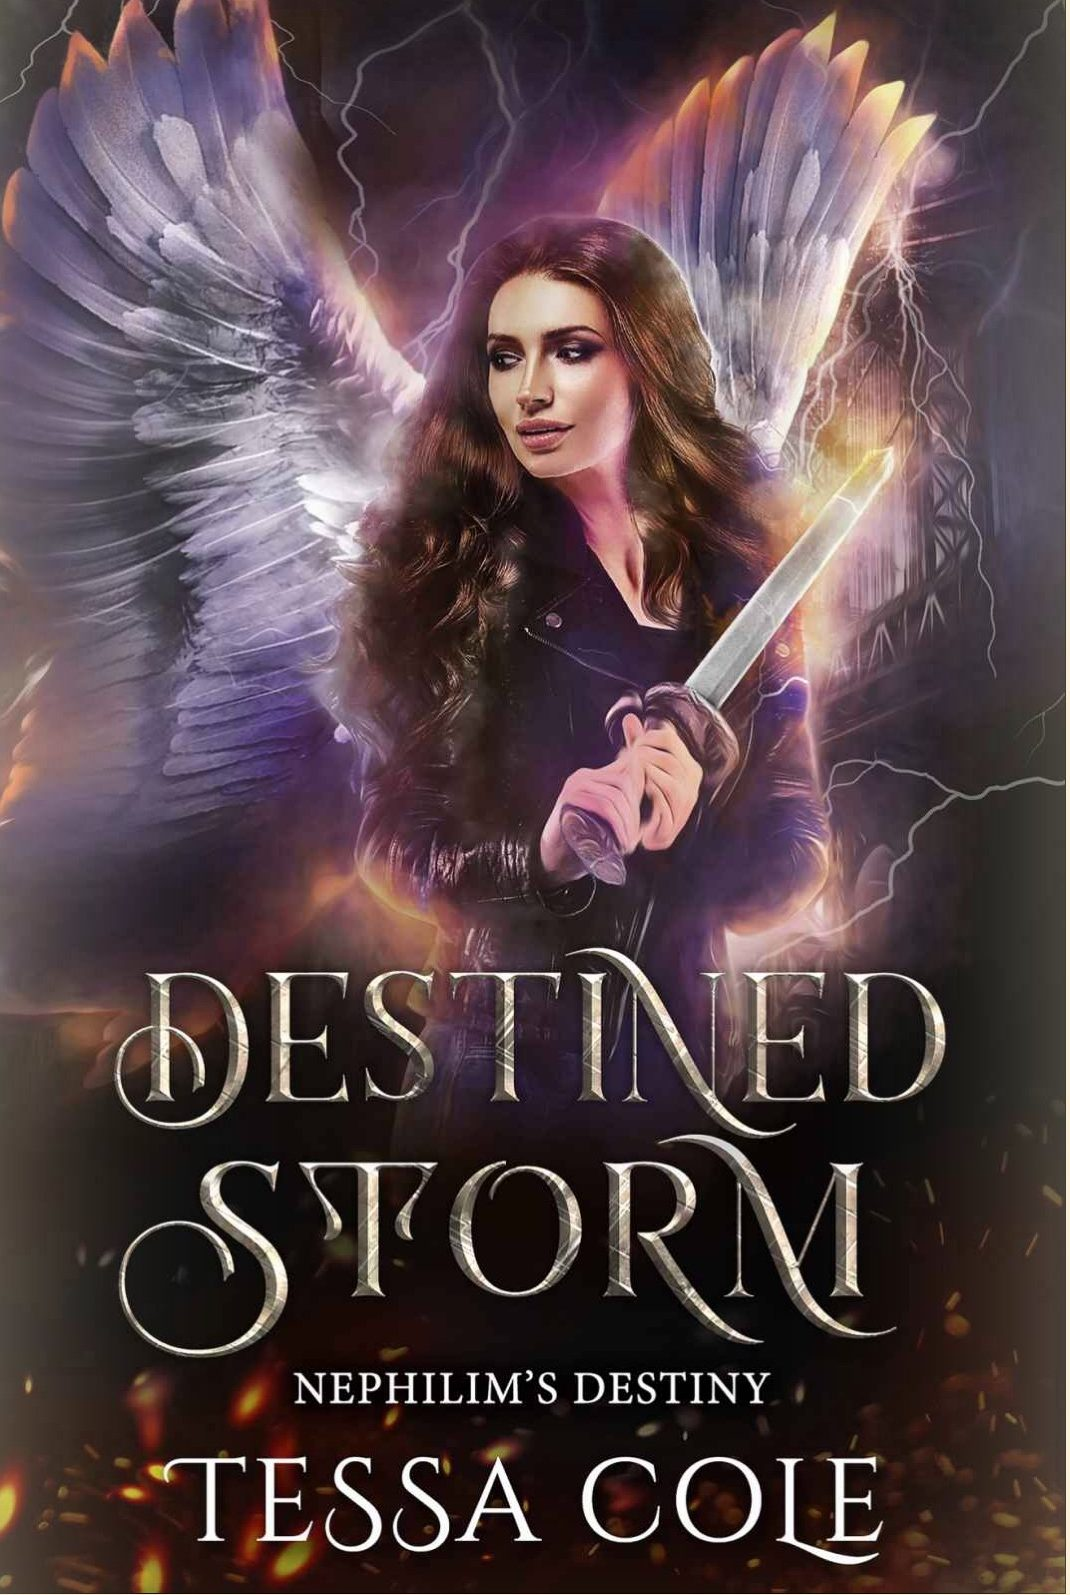 Destined Storm by Tessa Cole – A Book Review